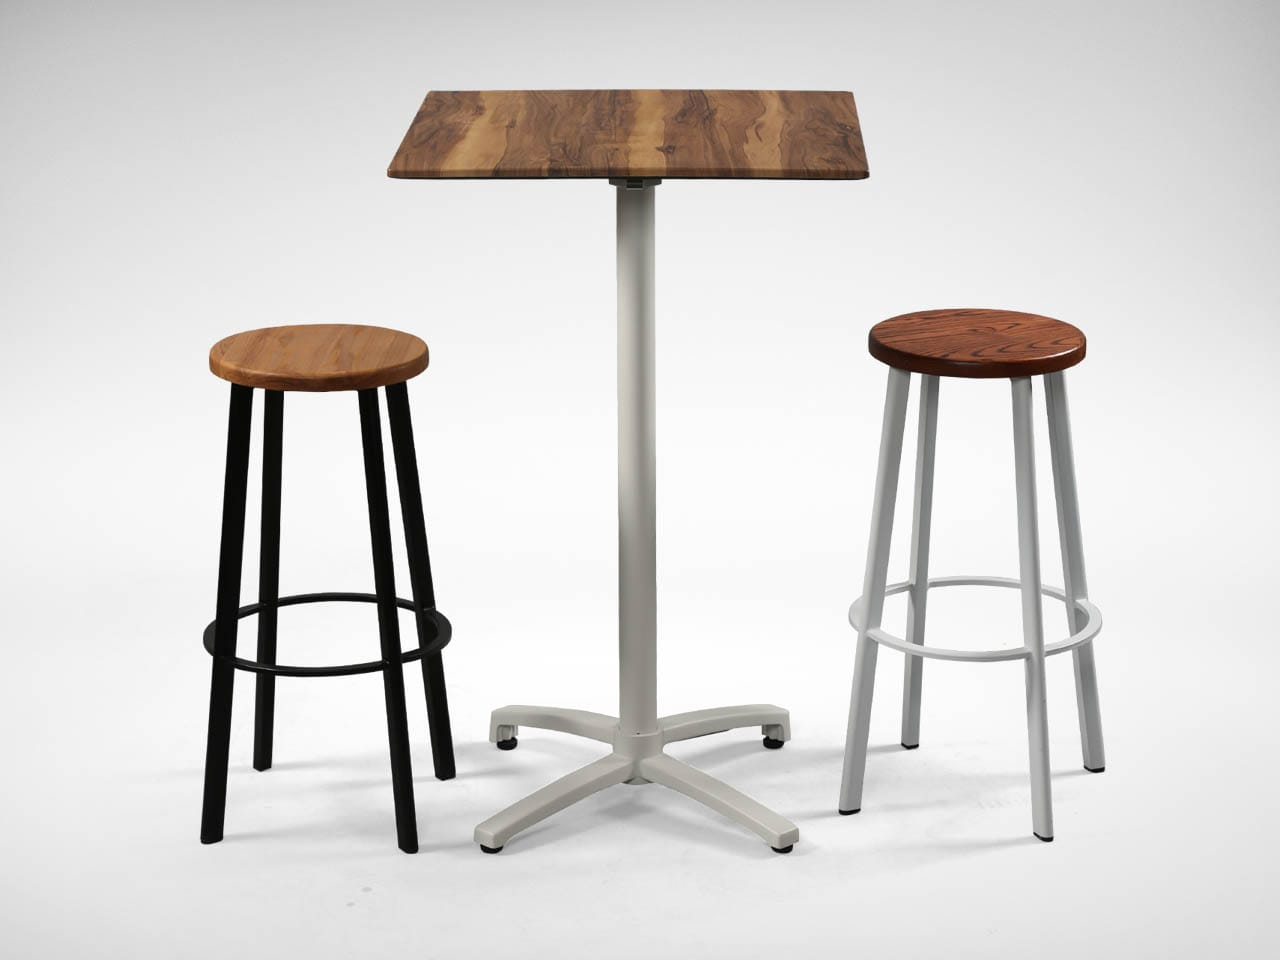 Match with [Grit table leg, Toyo-Wood barstool]